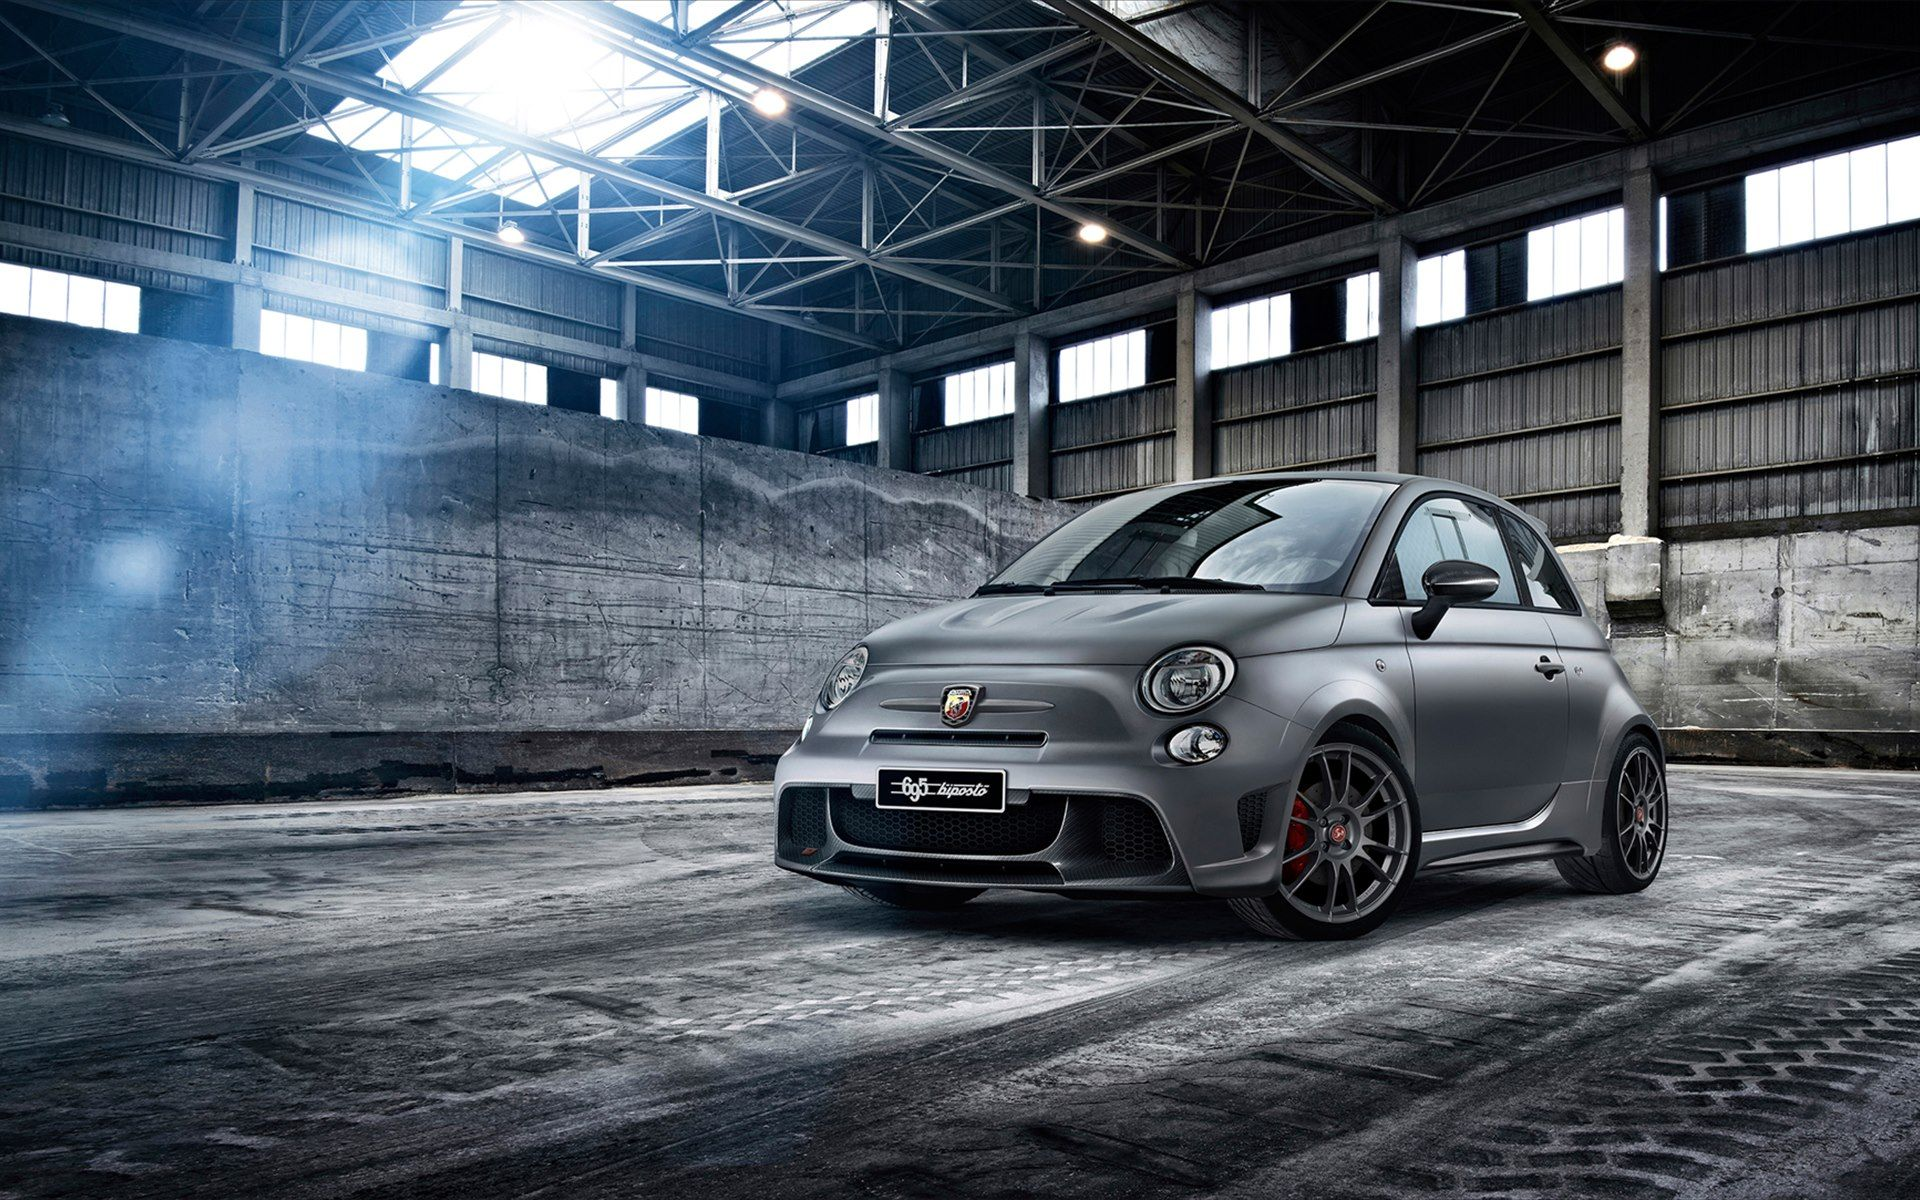 Abarth 695 Hatchback | Cars | Pinterest | Fiat abarth, Fiat and Car